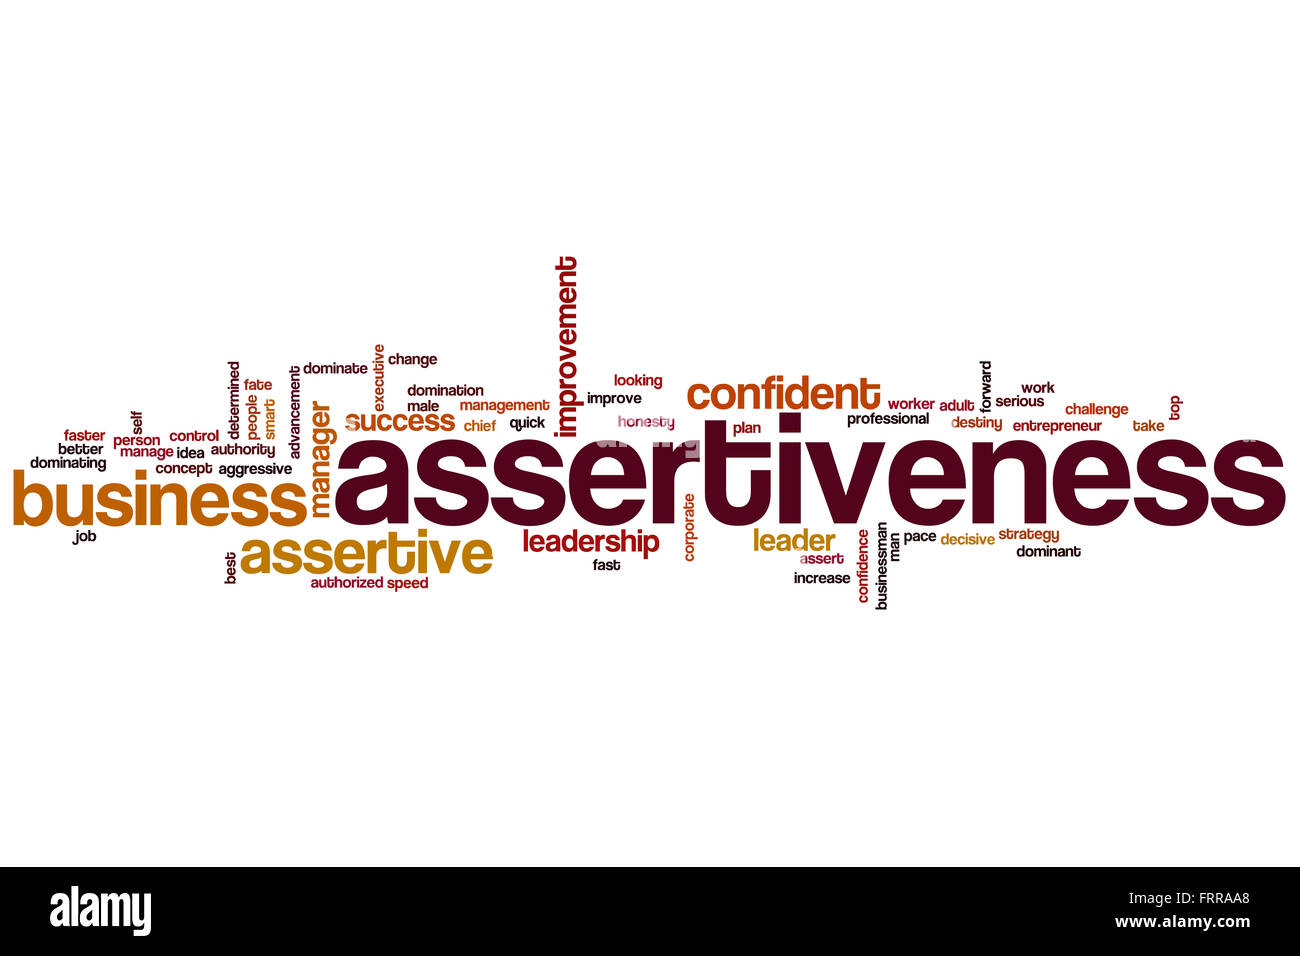 Assertiveness word cloud concept - Stock Image